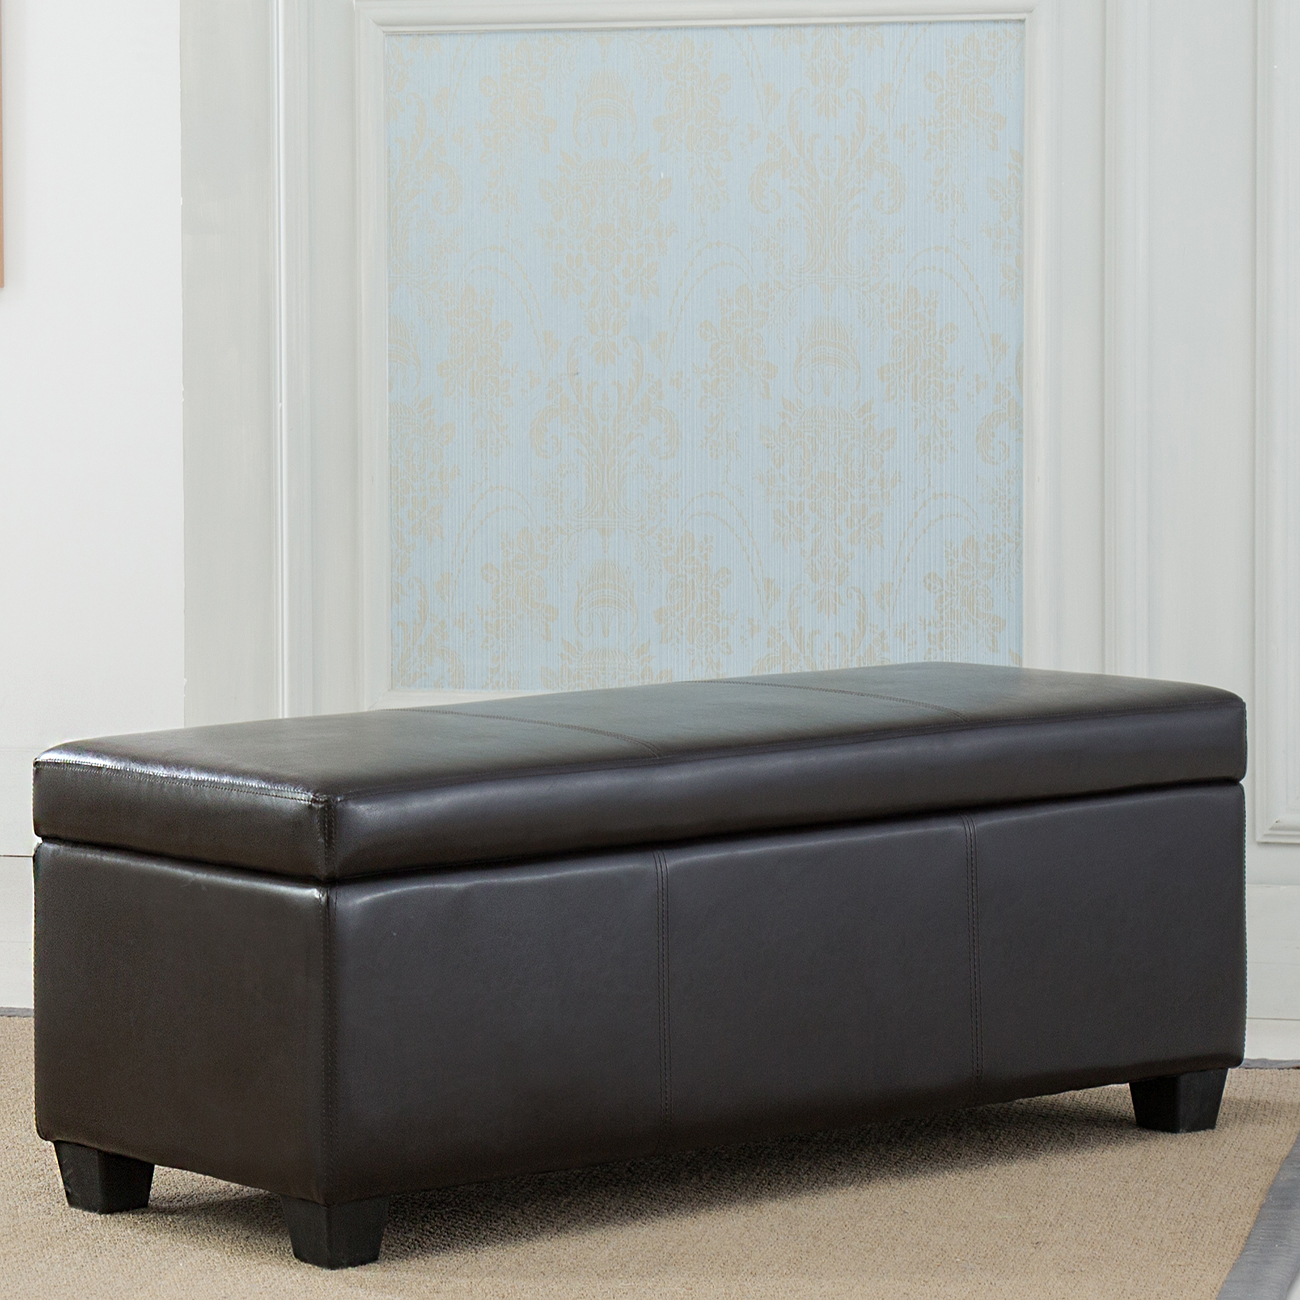 Bedroom Chairs And Ottomans: Contemporary Modern Faux Leather Bedroom Rectangular